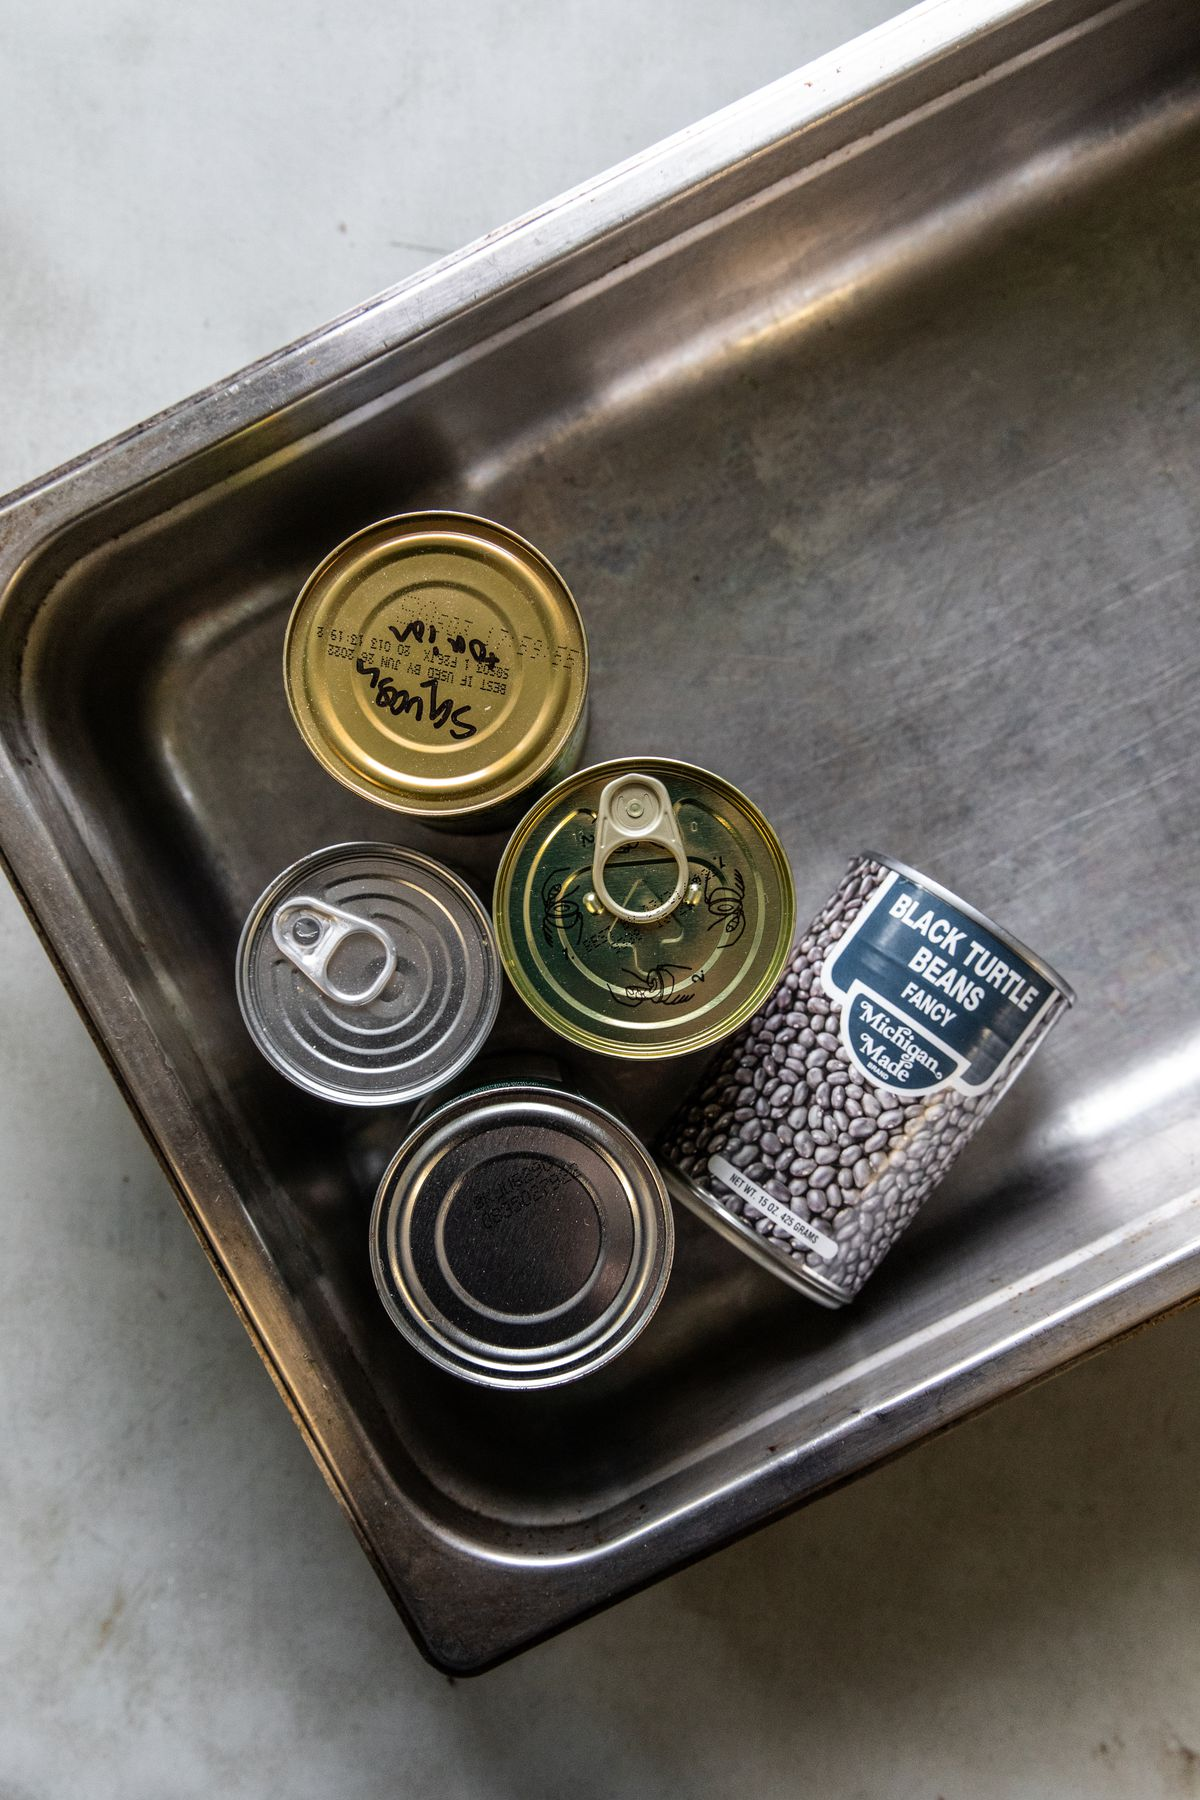 A collection of canned goods in a steel pan